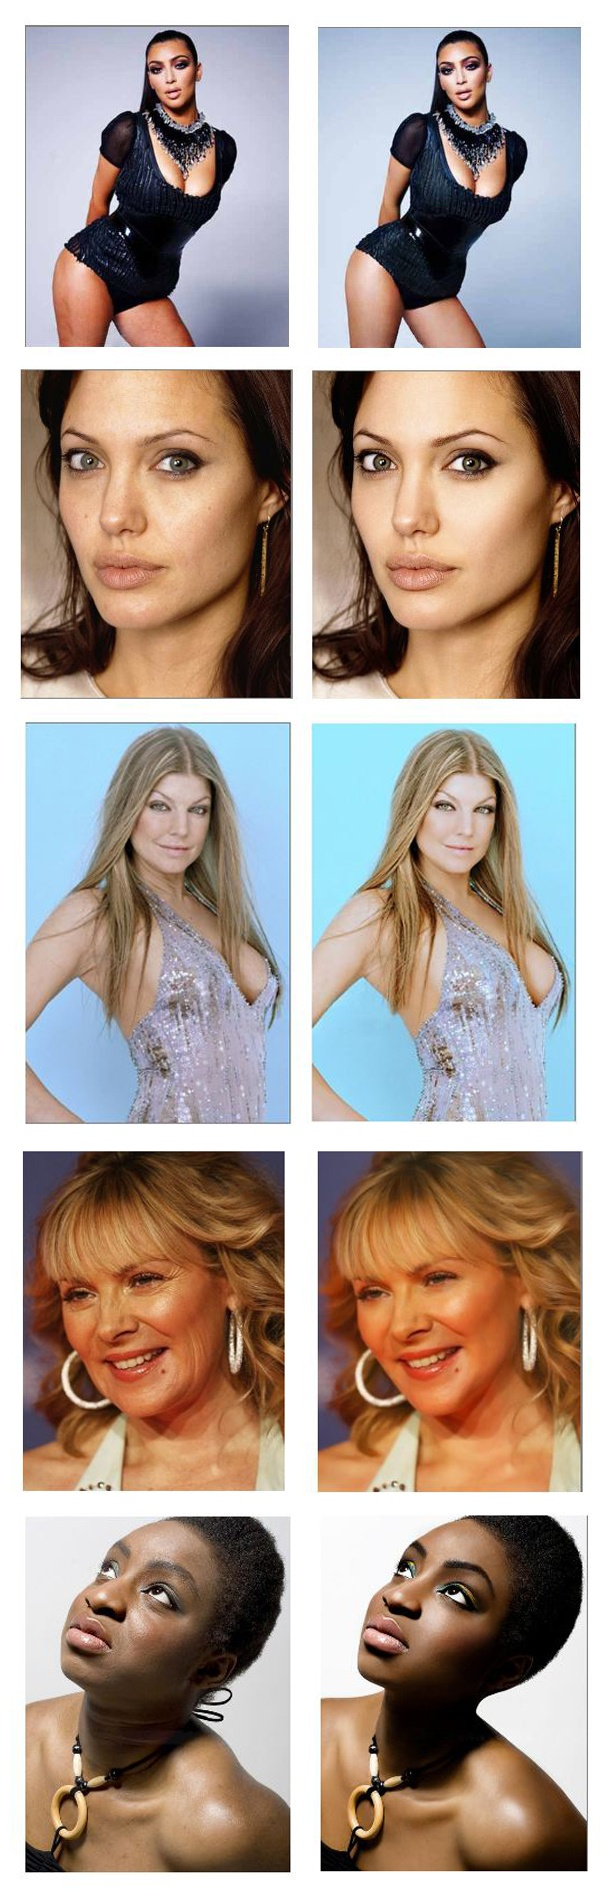 "Don't believe the magazine lies; society's ideal woman is impossible. ""Photoshop transformations of celebrities and models revealed. Click for more photos."""